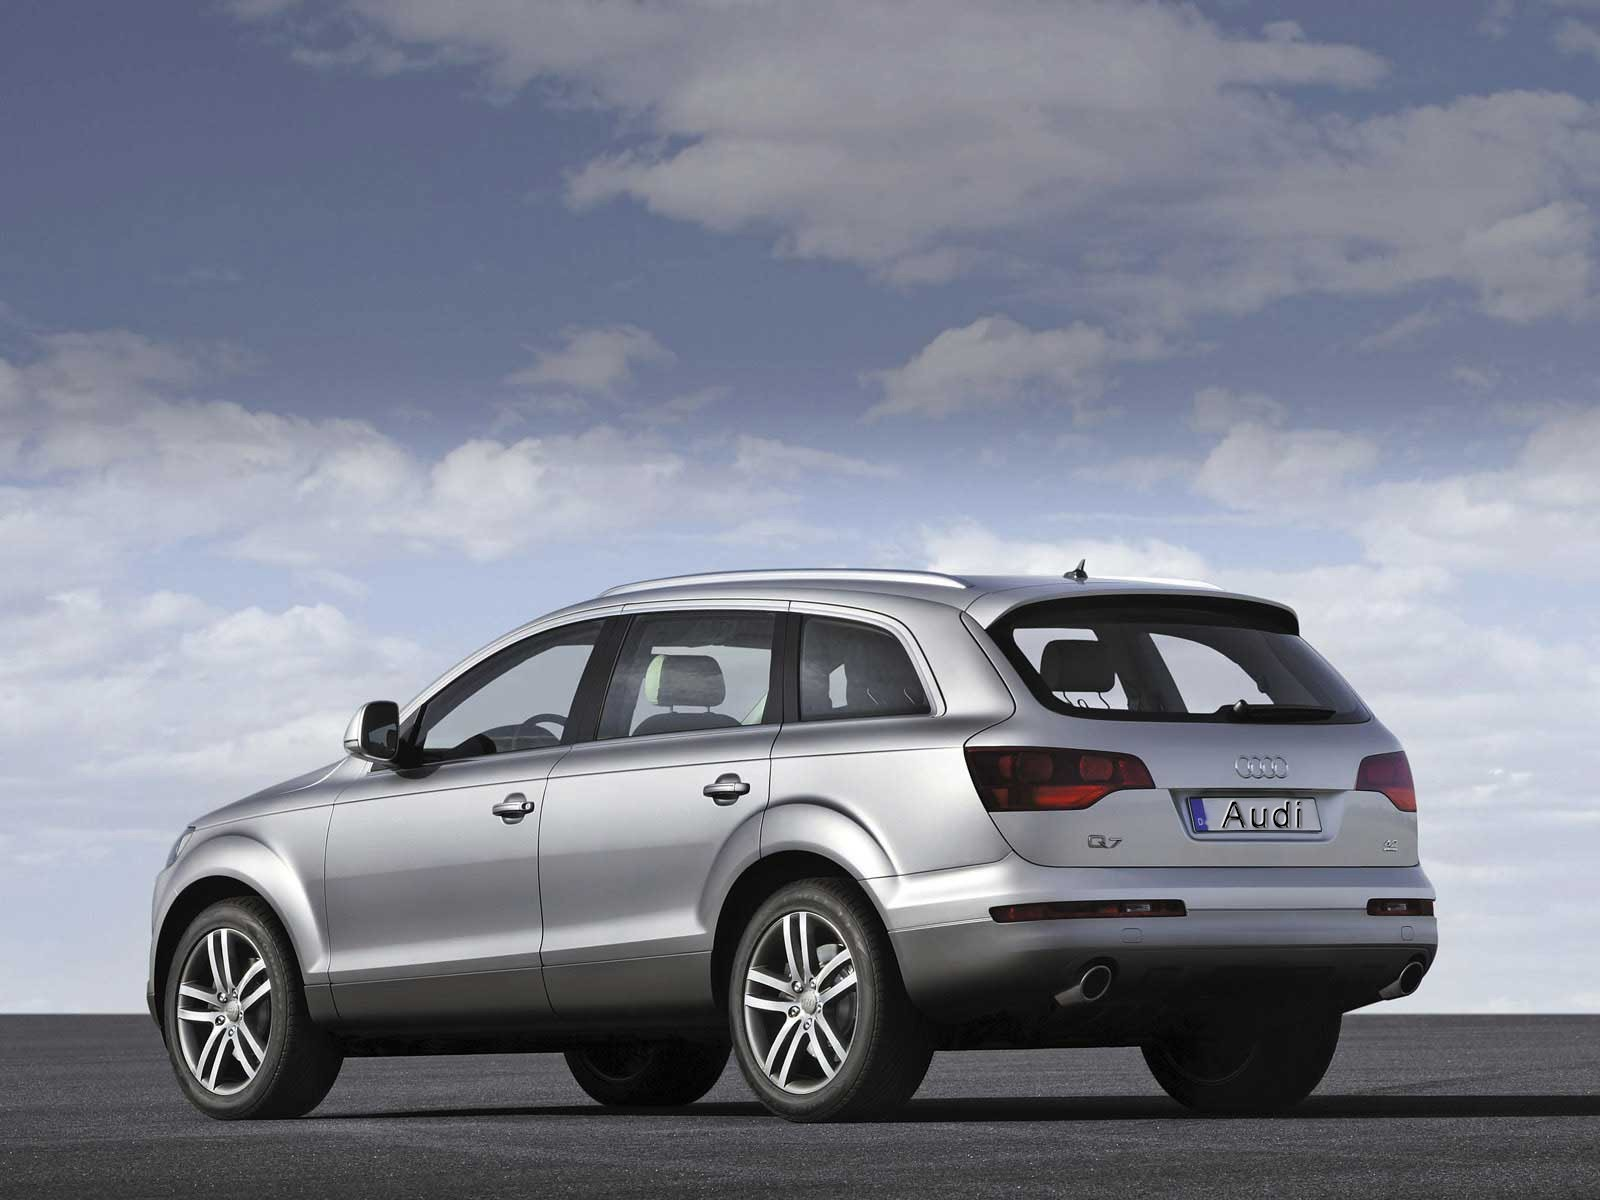 cars audi q7 SUV HD Wallpaper